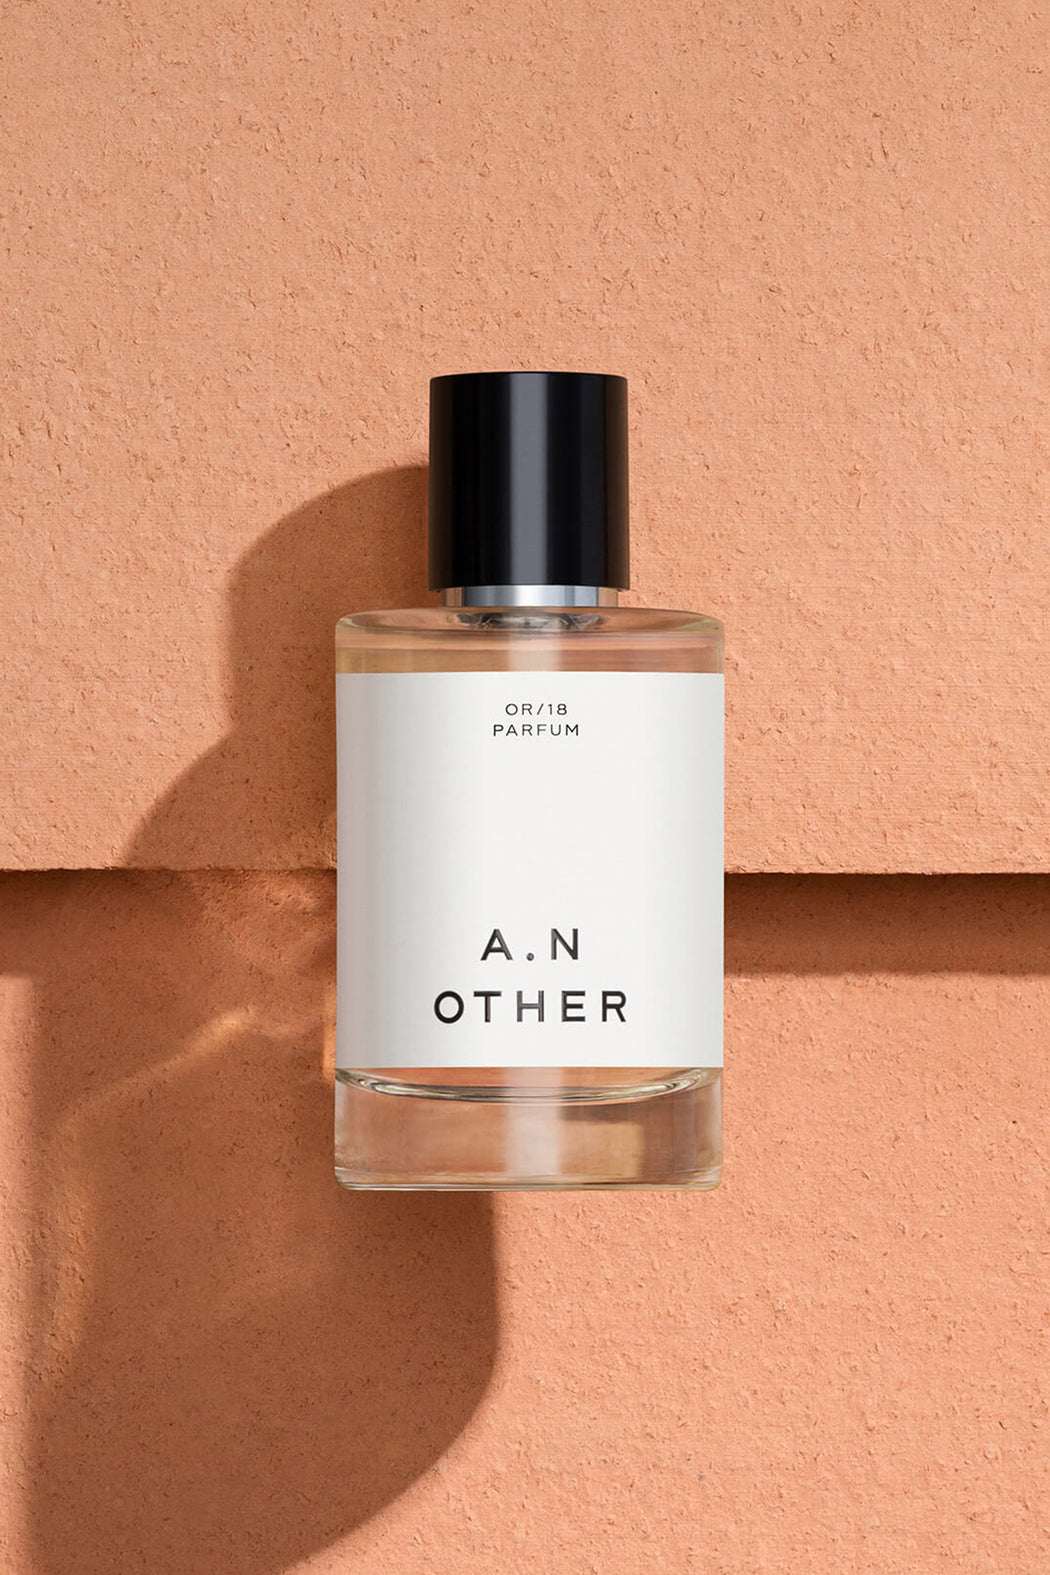 A.N. OTHER - OR/18